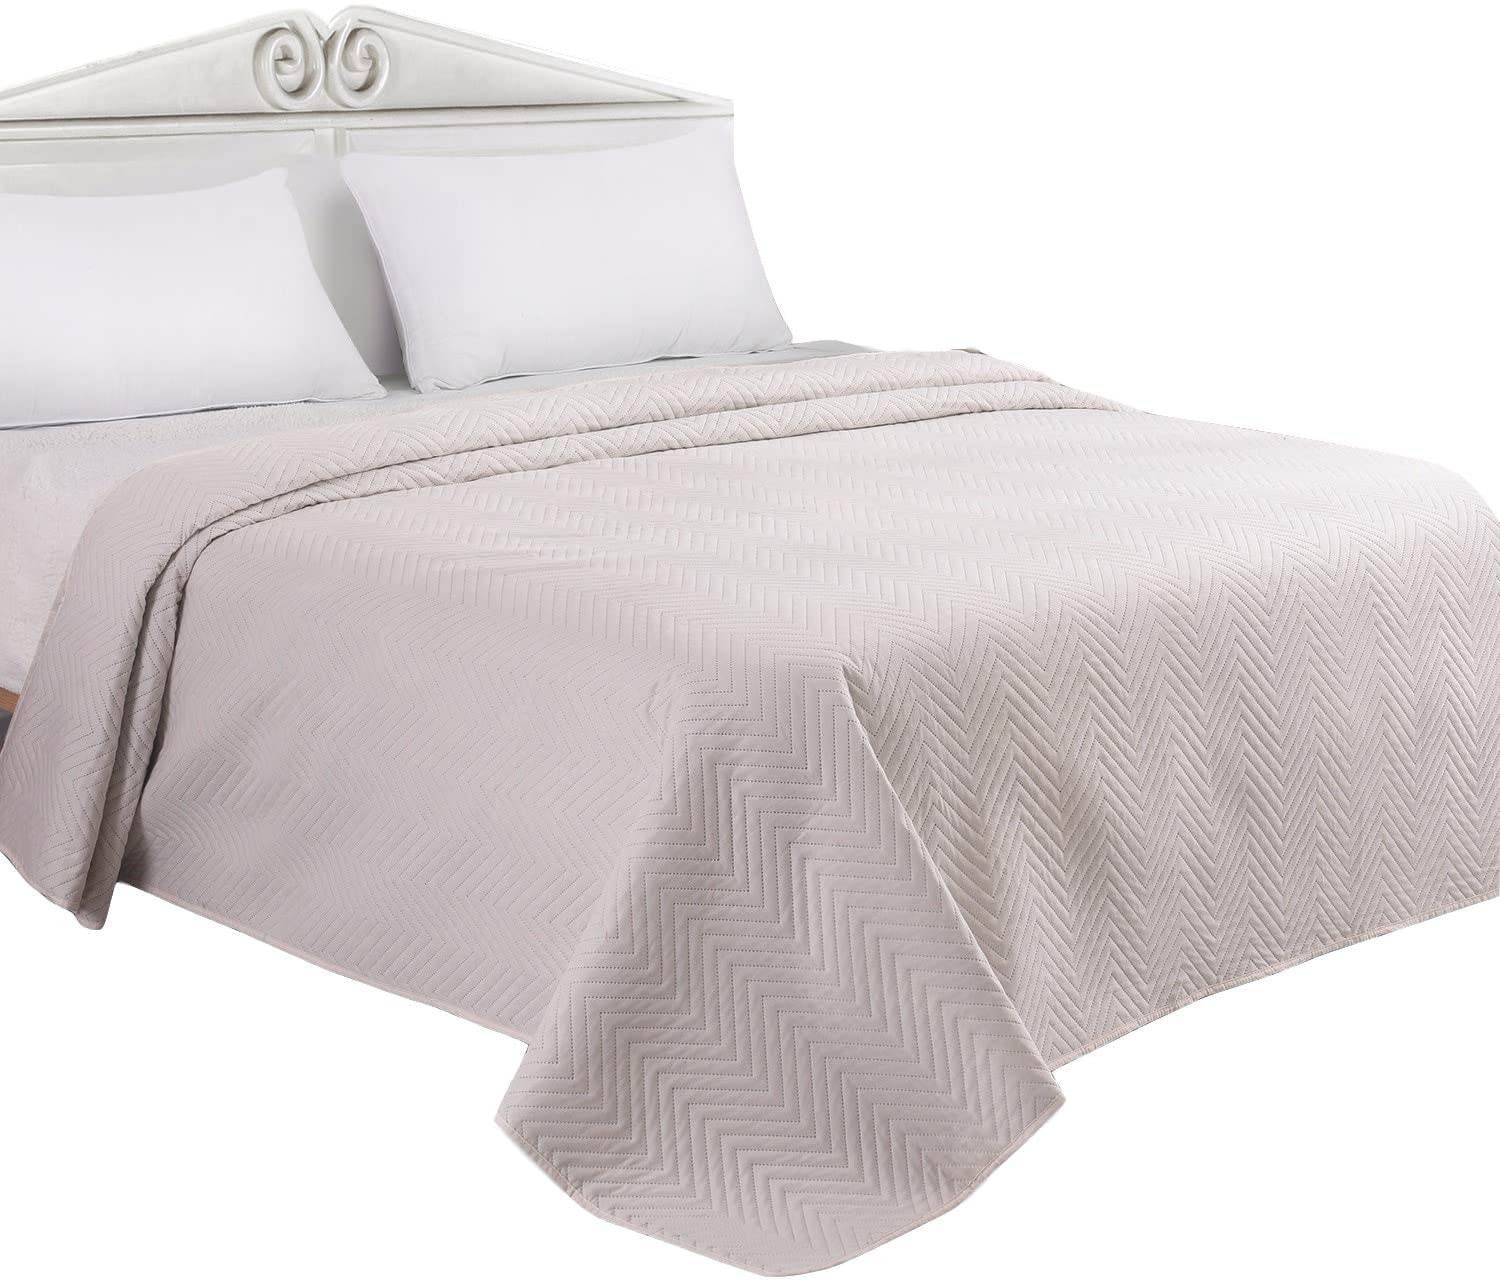 LITHER Bedspreads Queen Size Lightweight Oversized Quilt, Coverlet Waved Pattern Solid Color, Machine Washable, Ivory, 86x96inch